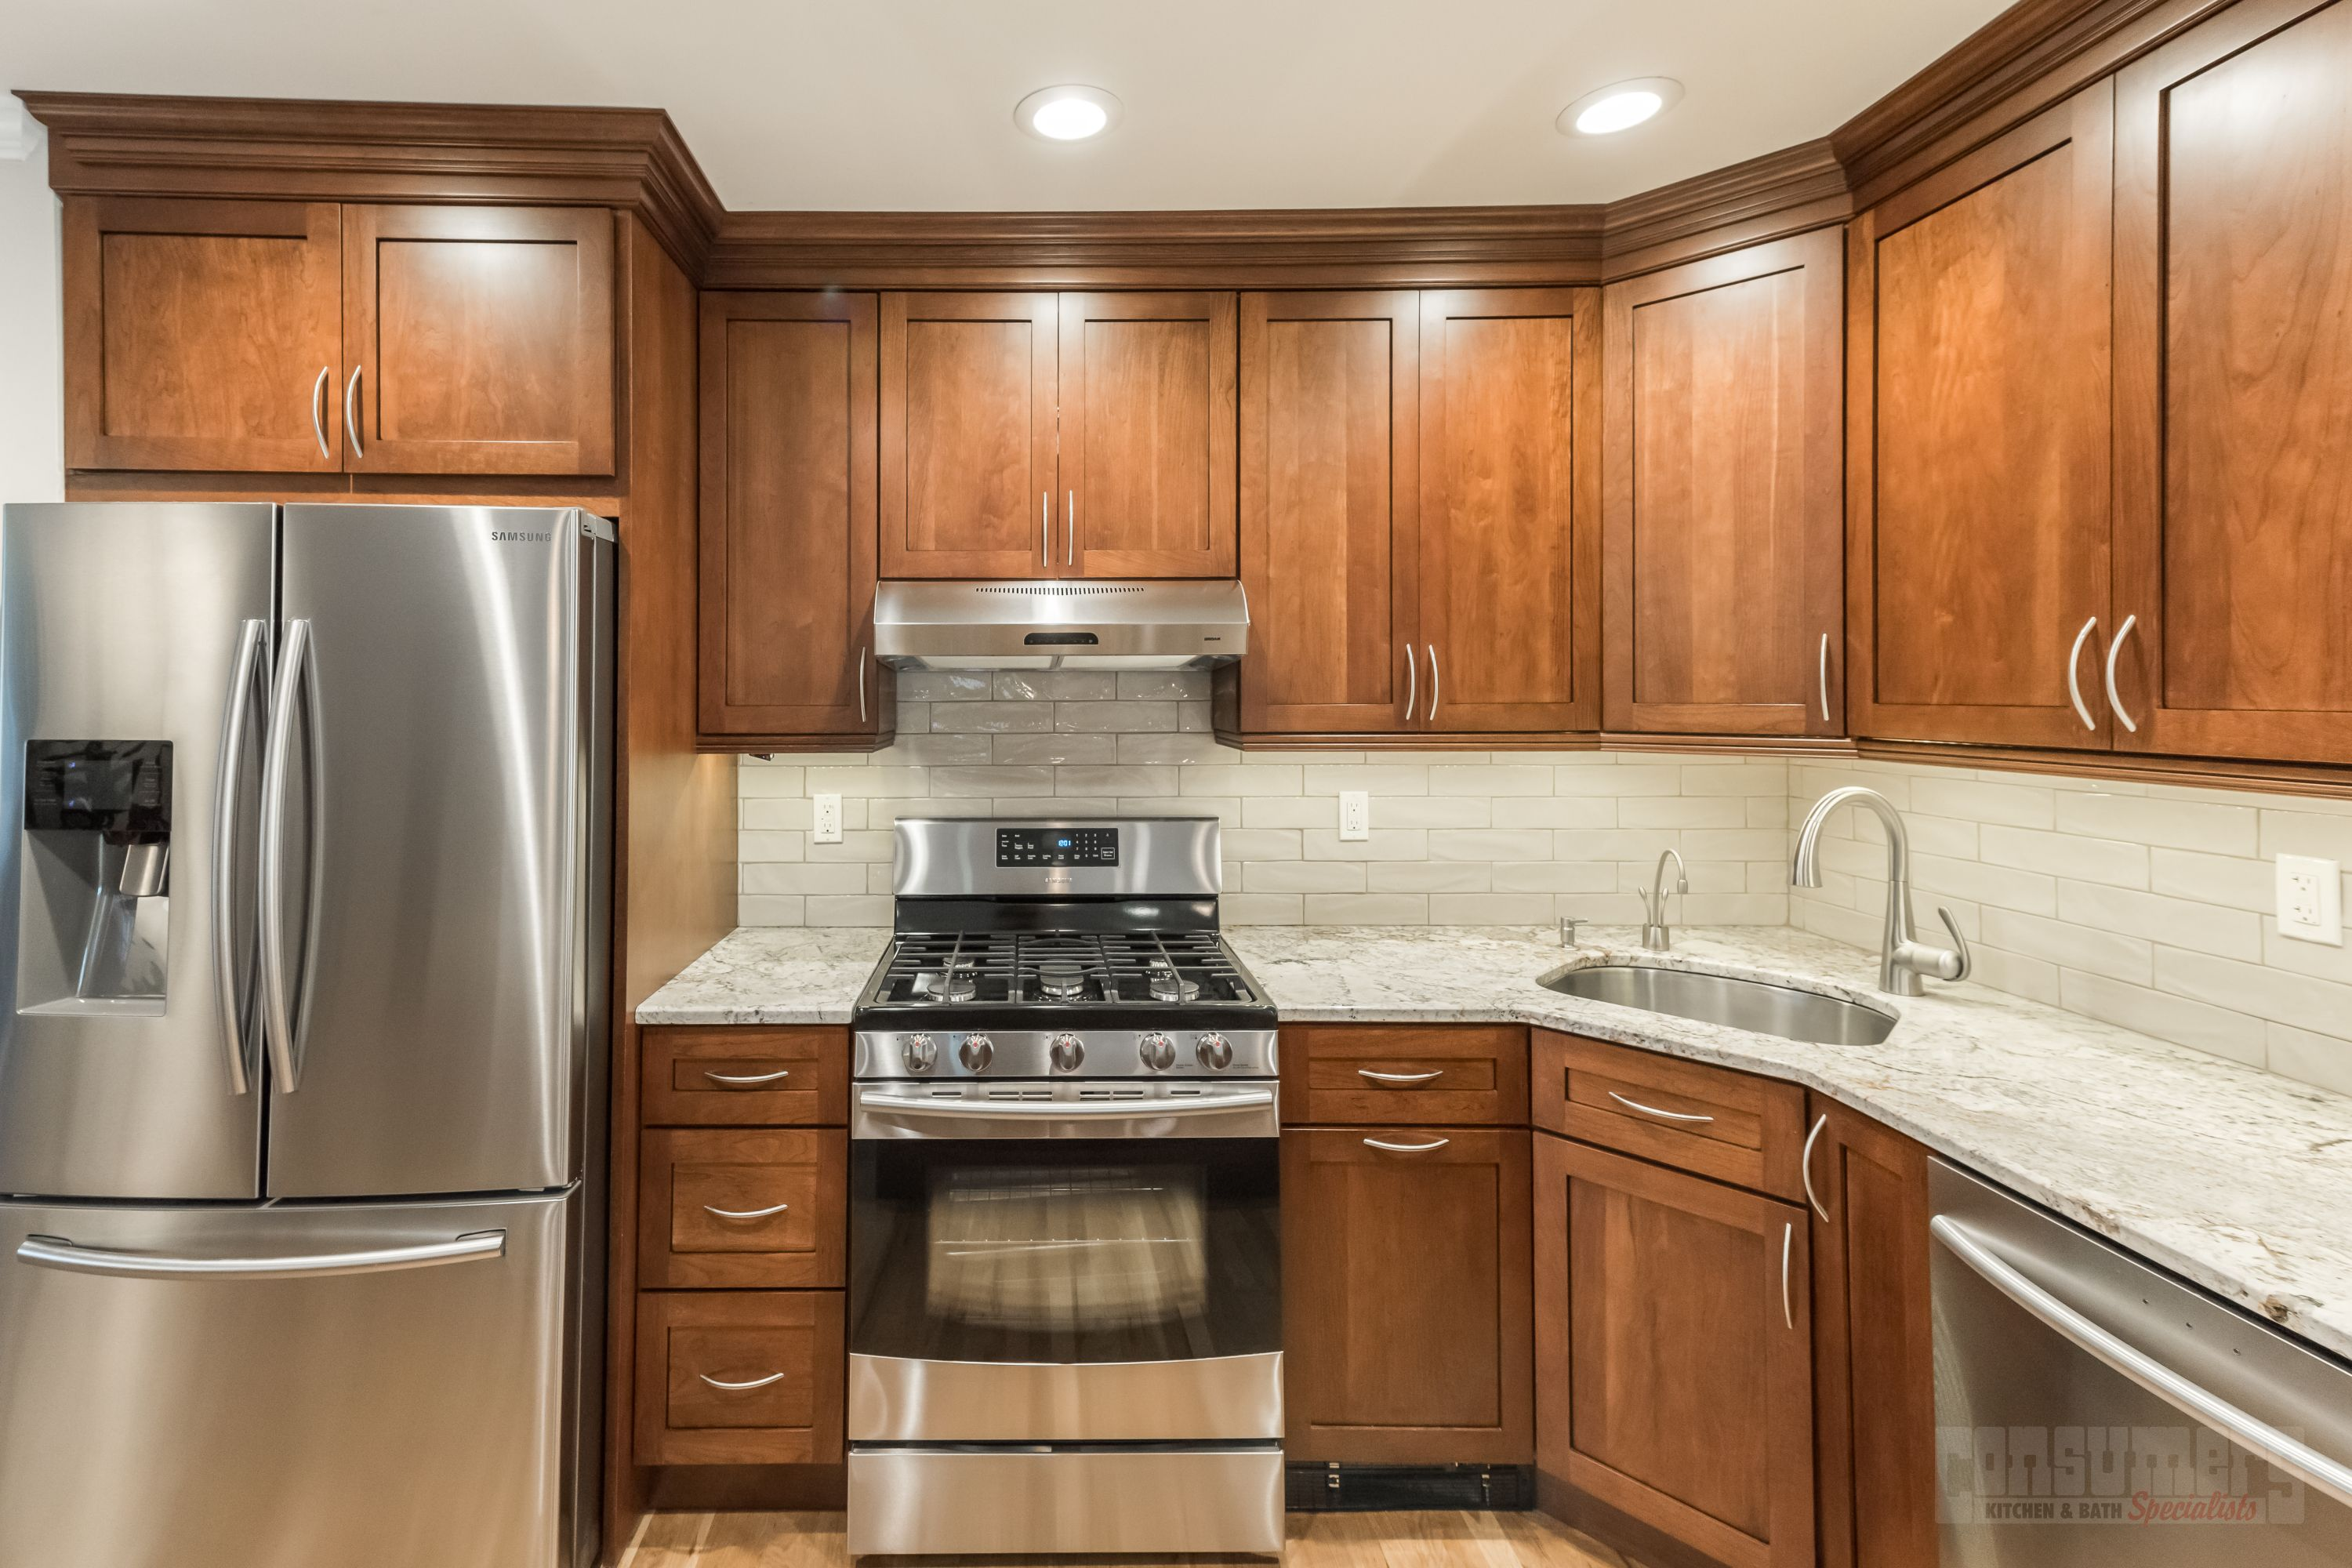 Pin by Consumers Kitchens & Baths on Commack Allure ...